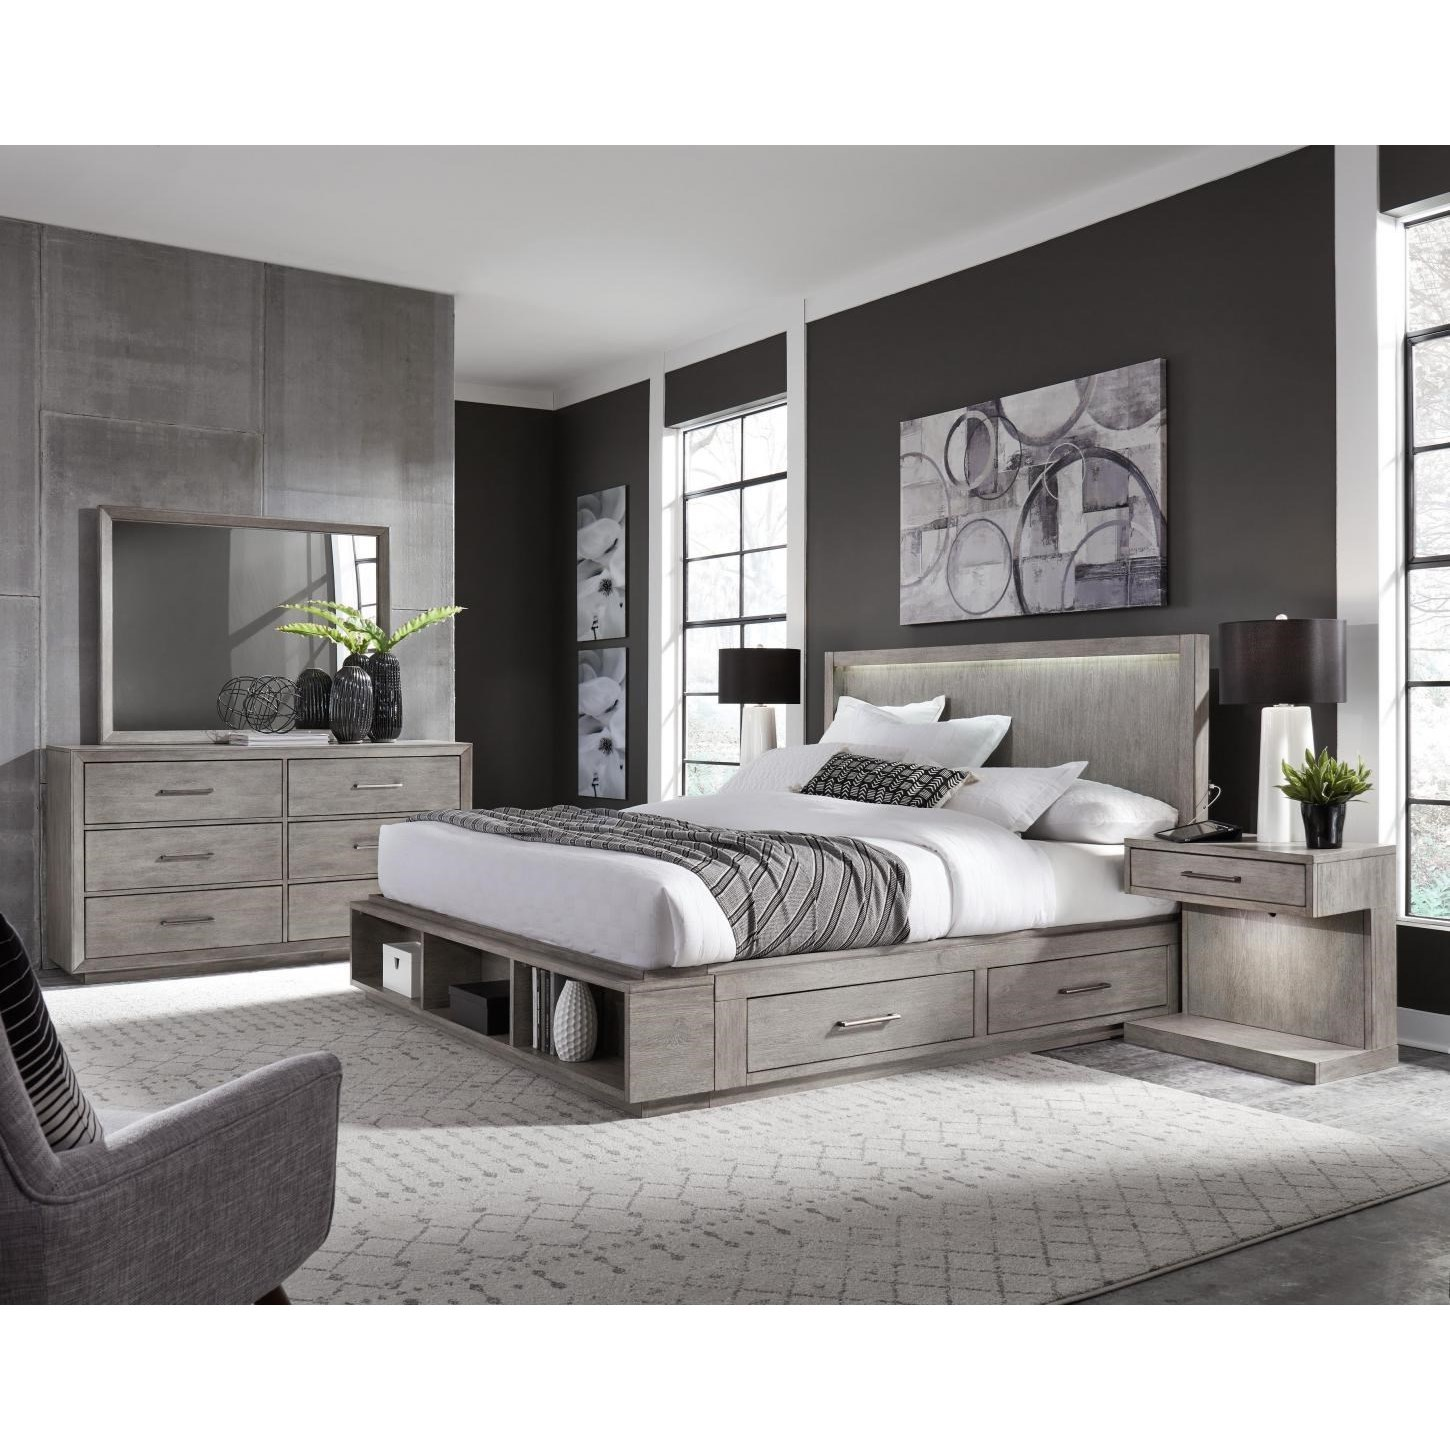 Platinum California King Bedroom Group by Aspenhome at Walker's Furniture